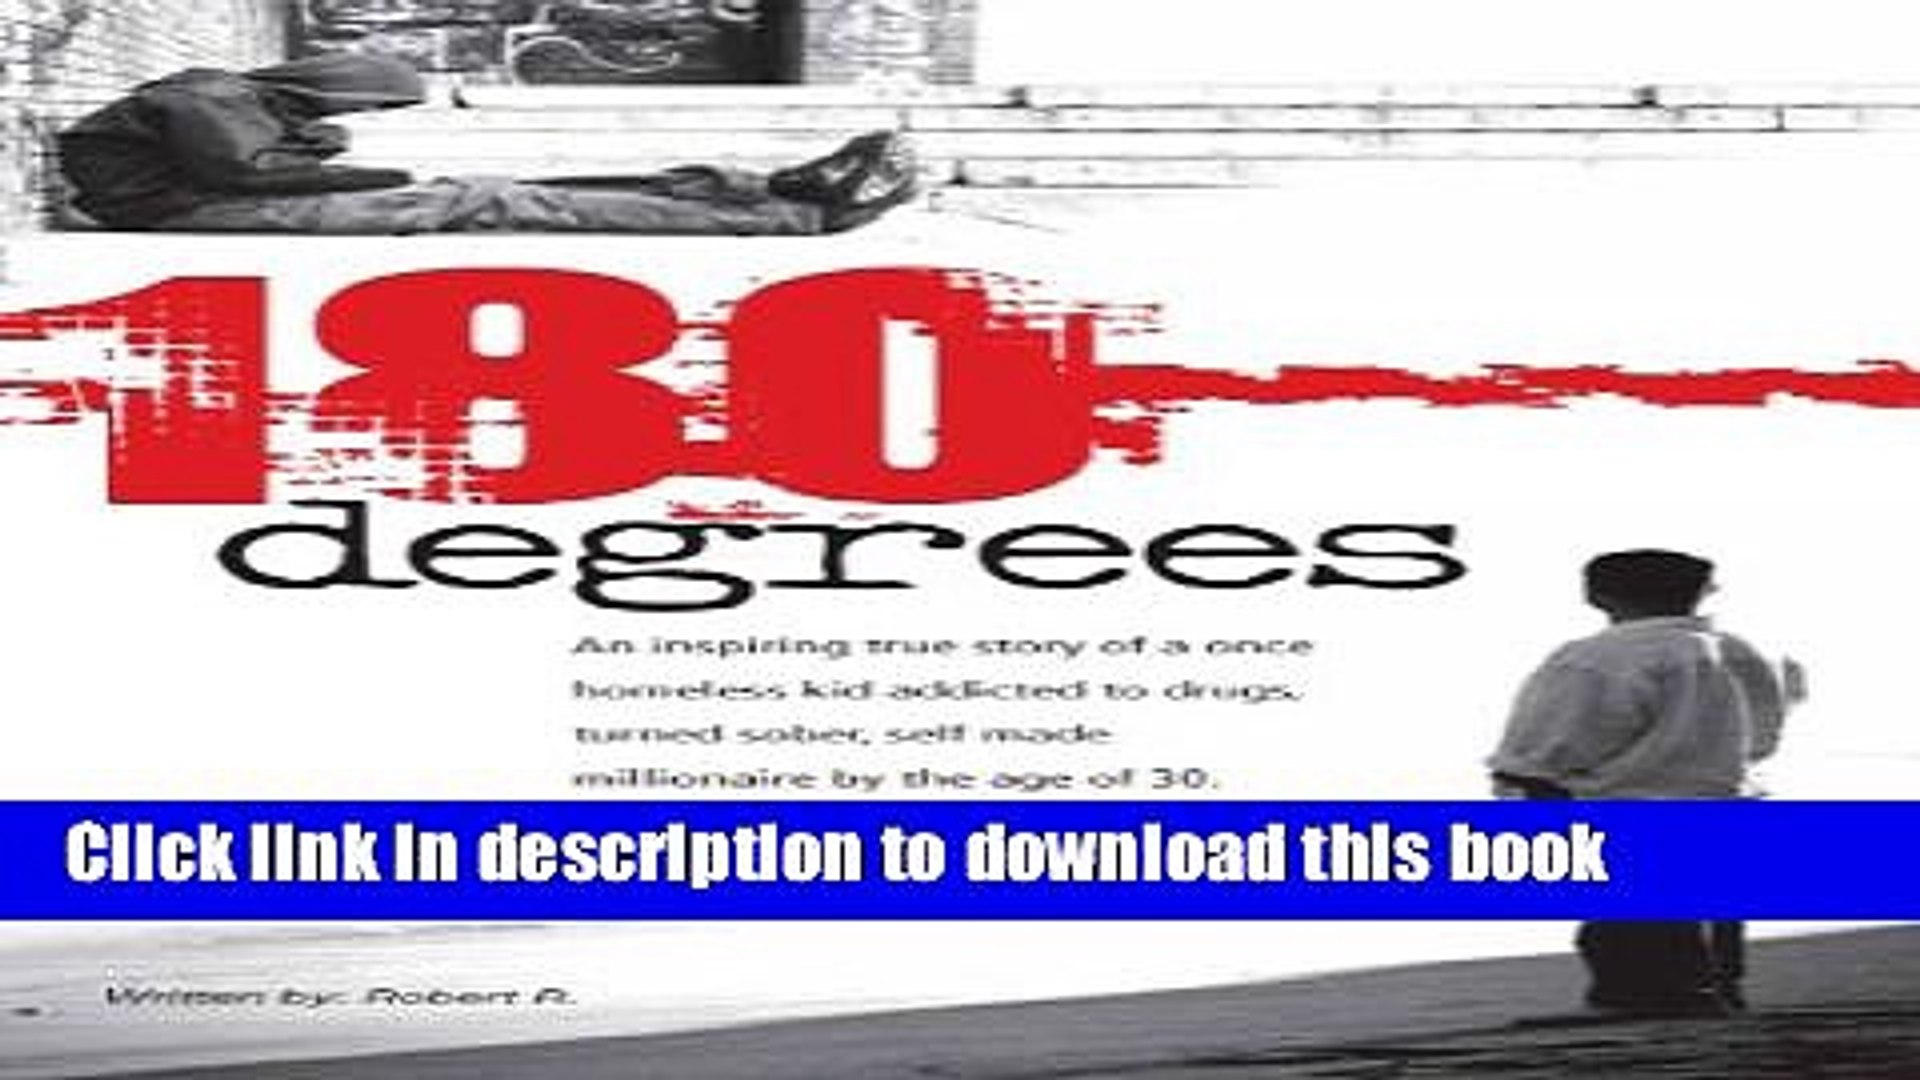 [Popular Books] 180 Degrees Free Online